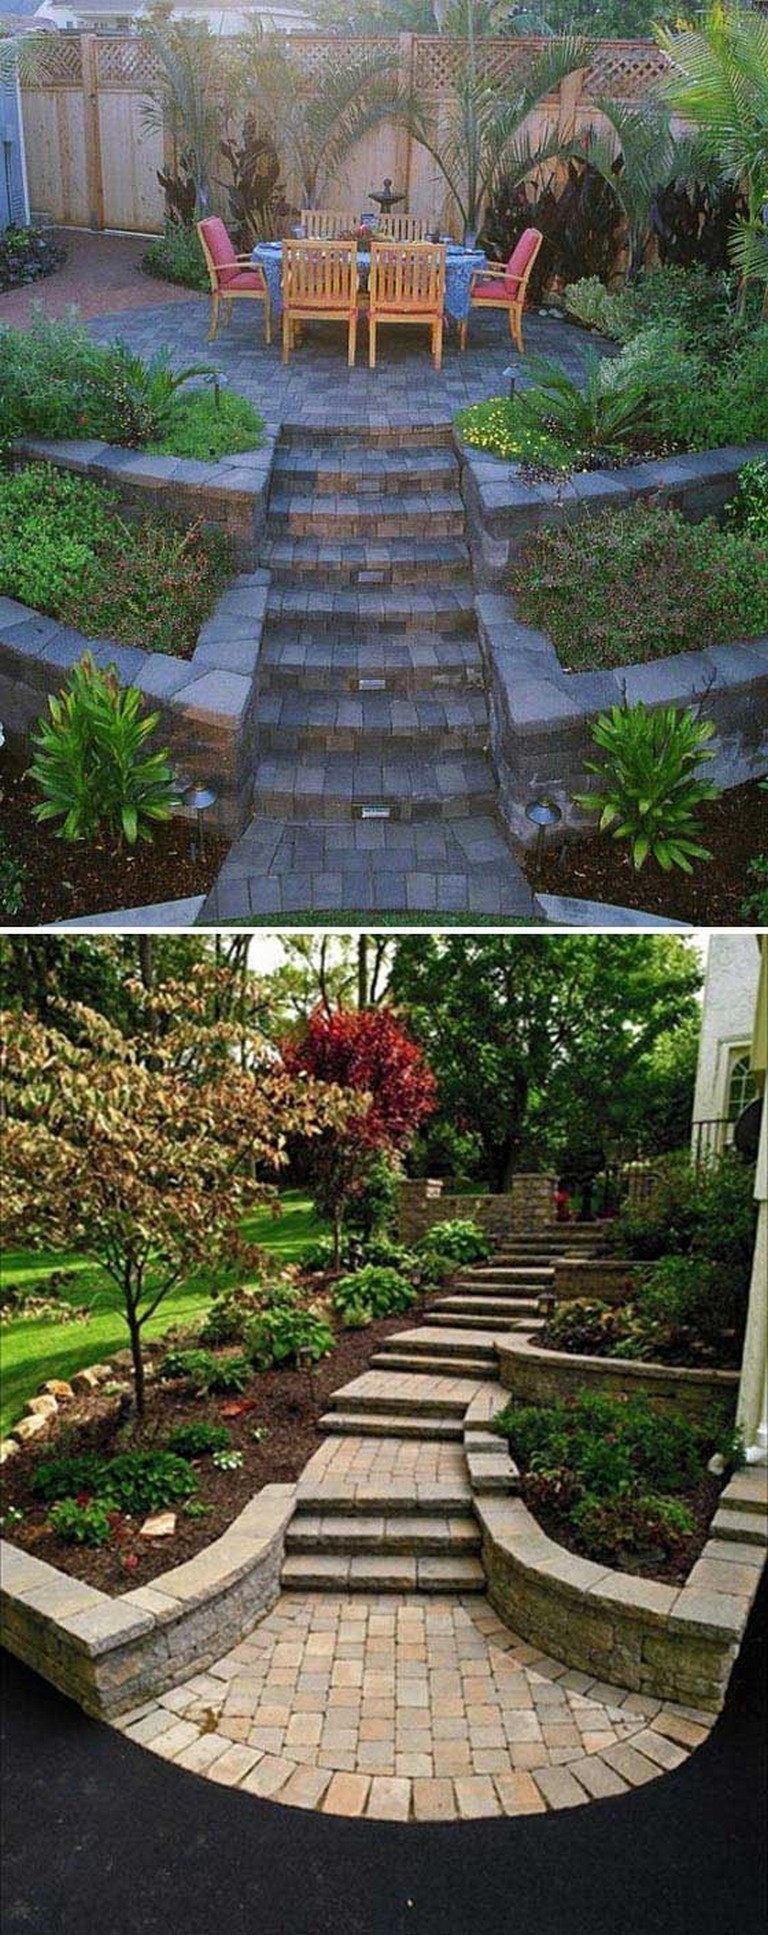 Small Backyard Landscaping Ideas on A Budget | Sloped ... on Small Sloped Backyard Ideas On A Budget  id=38020